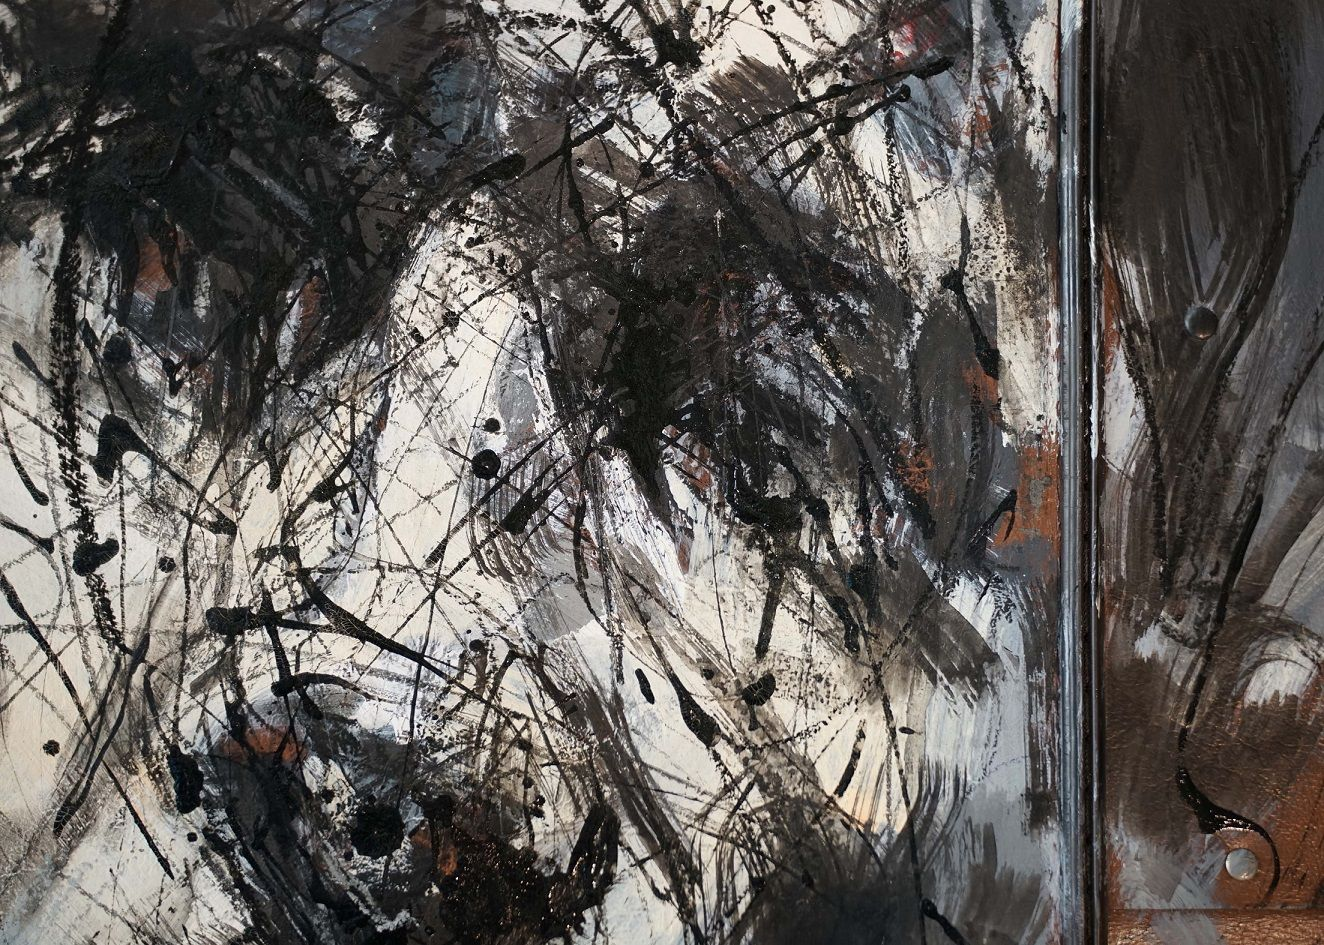 Contemporary painting - Hongyu Zhang - Untitled 21 - detail 3